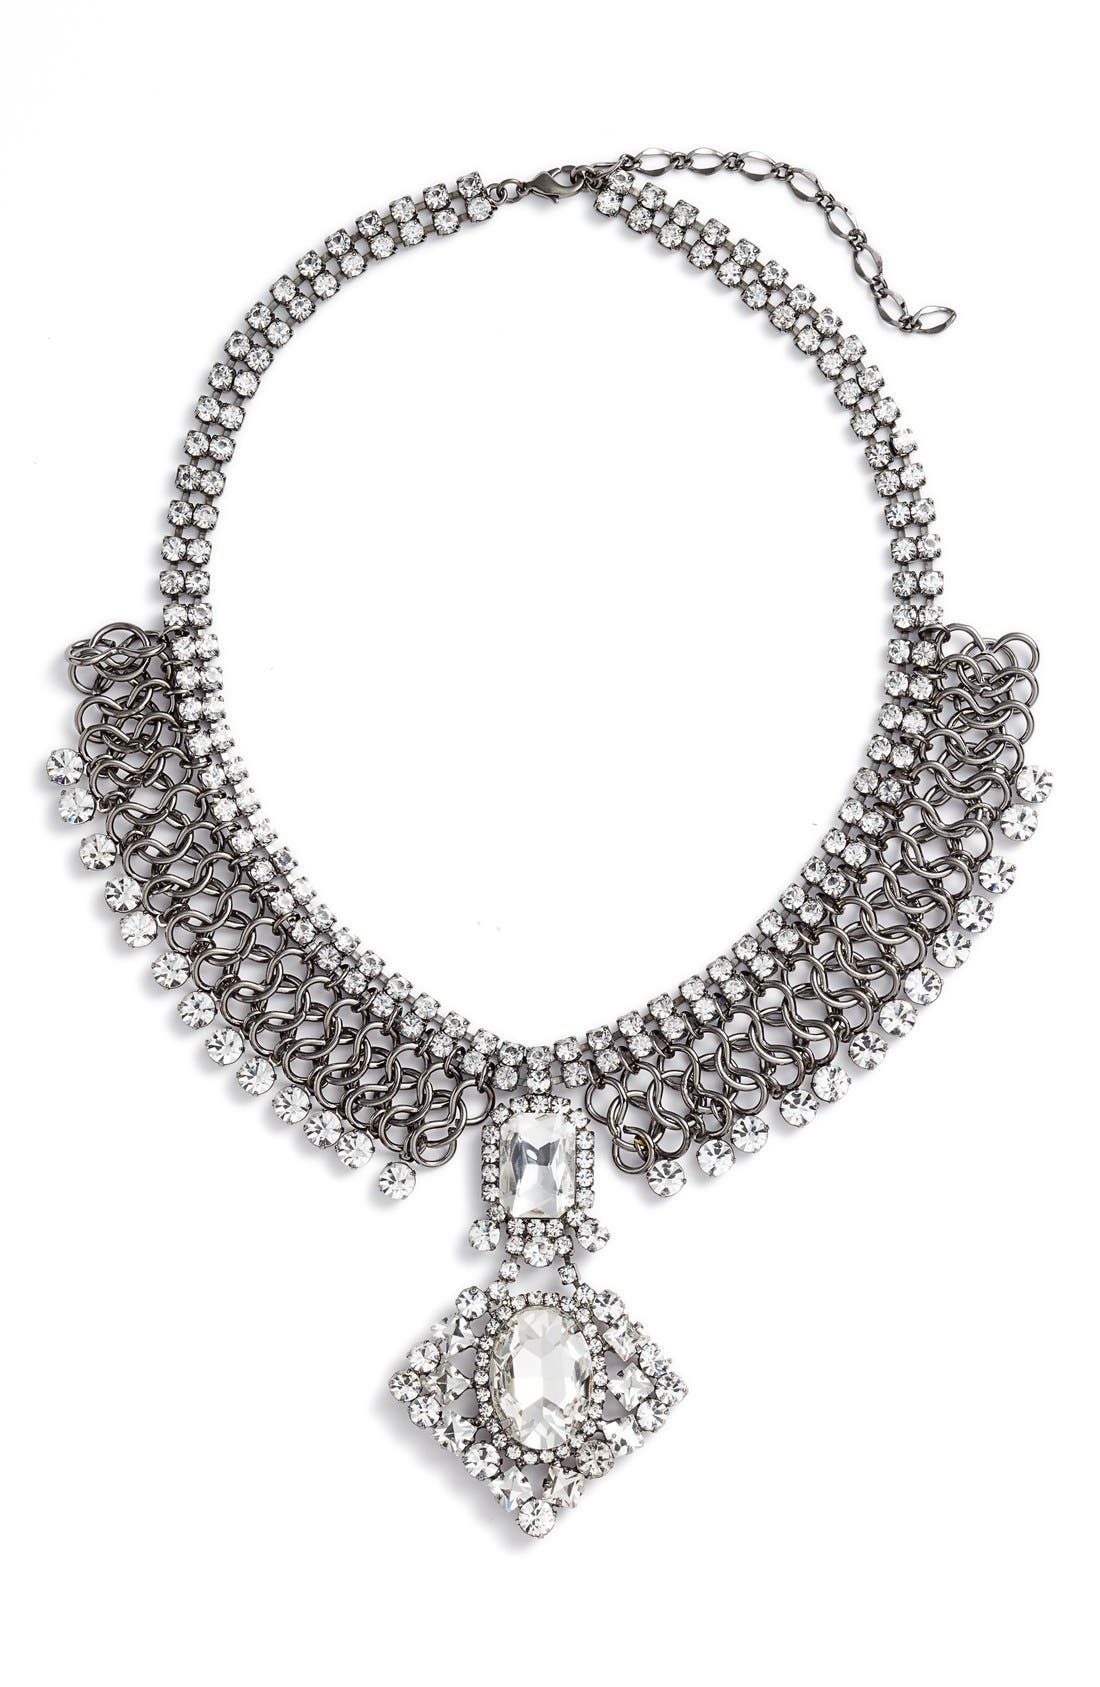 Main Image - Cristabelle Statement Collar Necklace